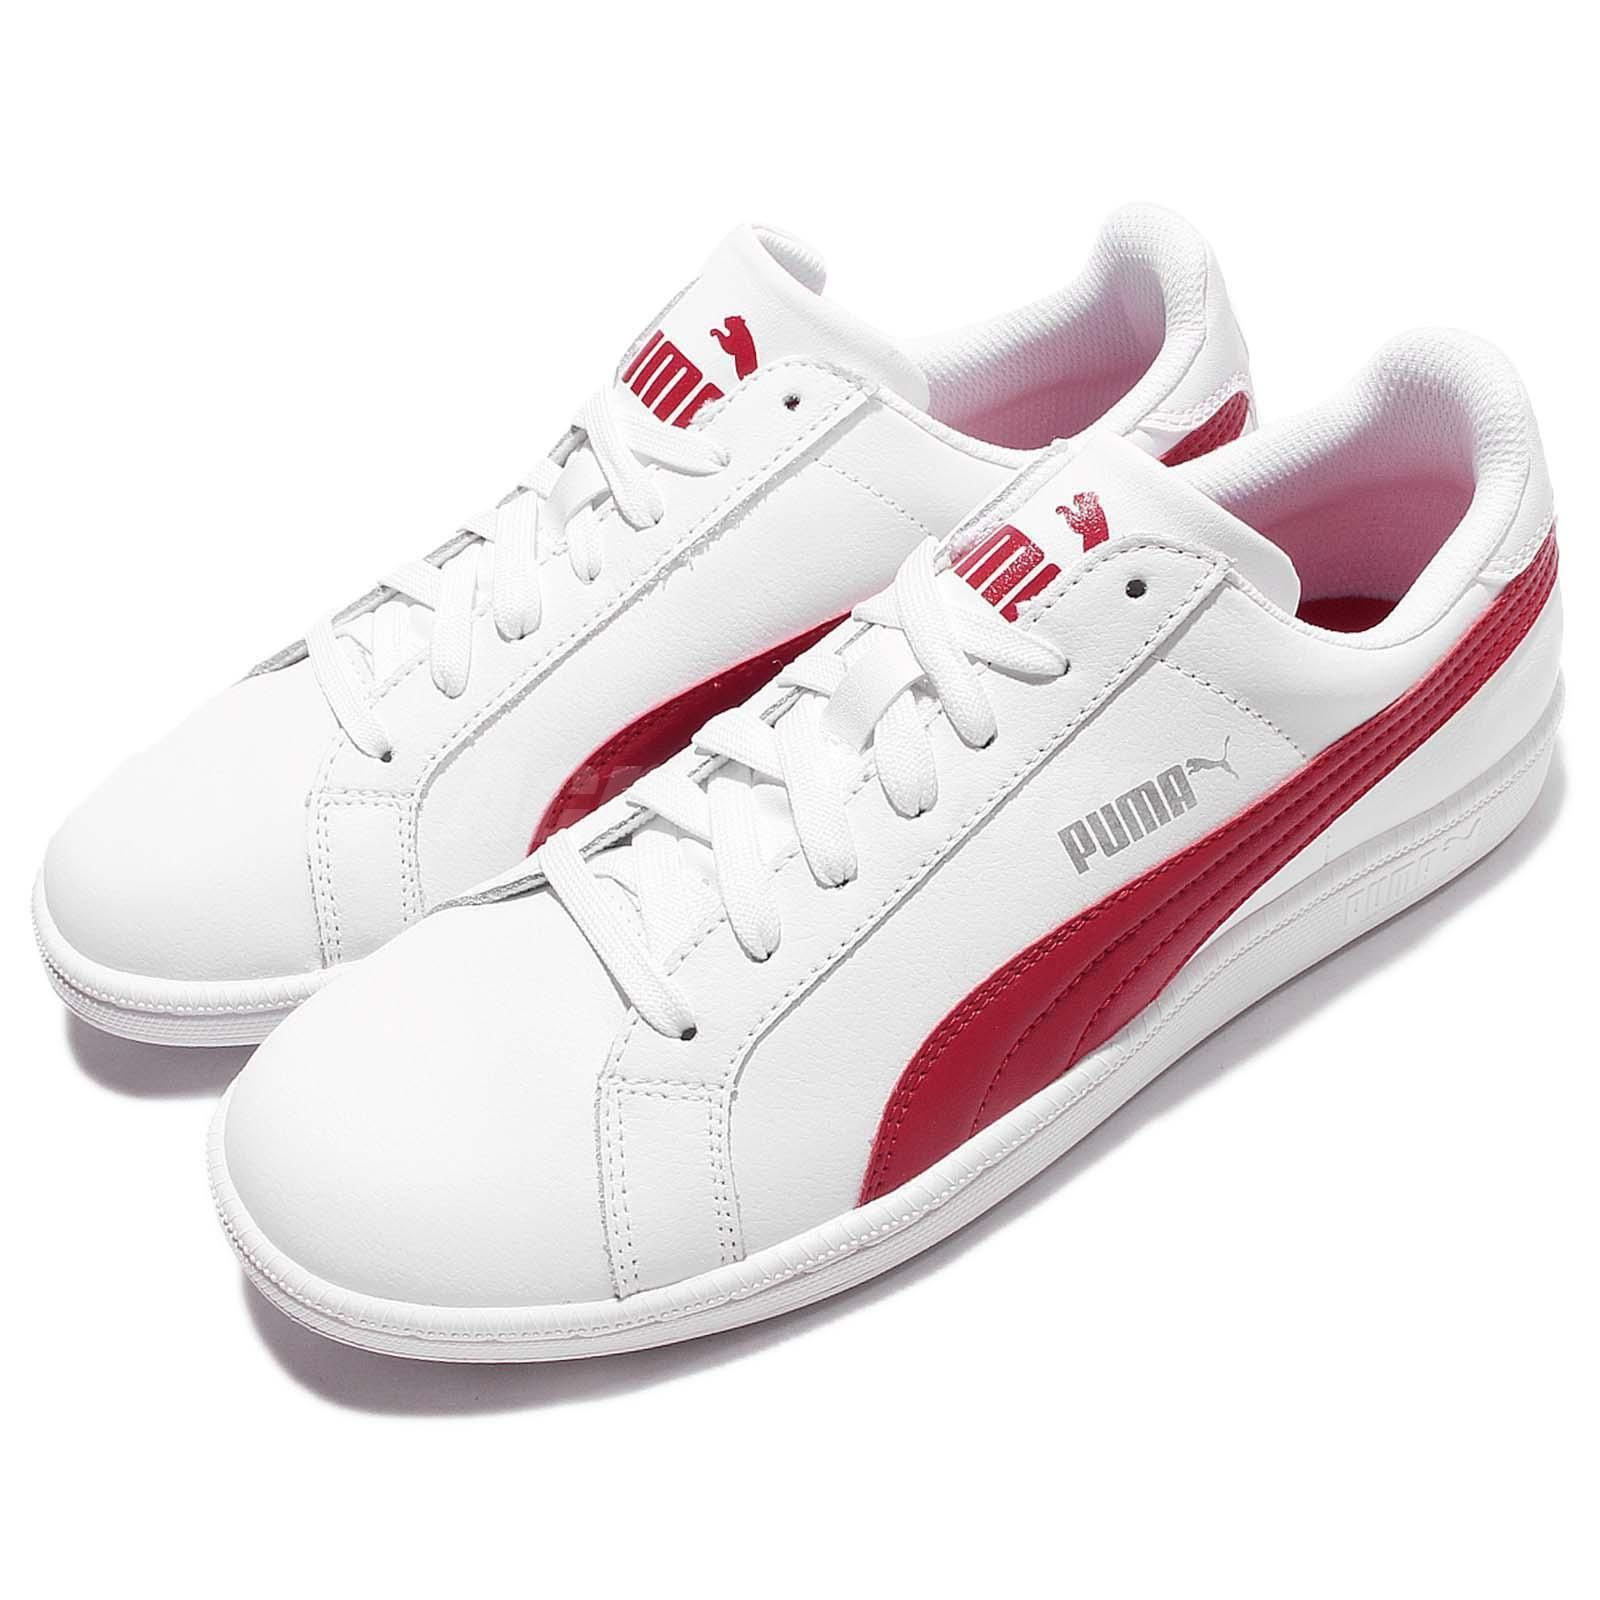 Puma Smash L White Red Retro Leather Mens Tennis Shoes Casual Sneakers  356722-18